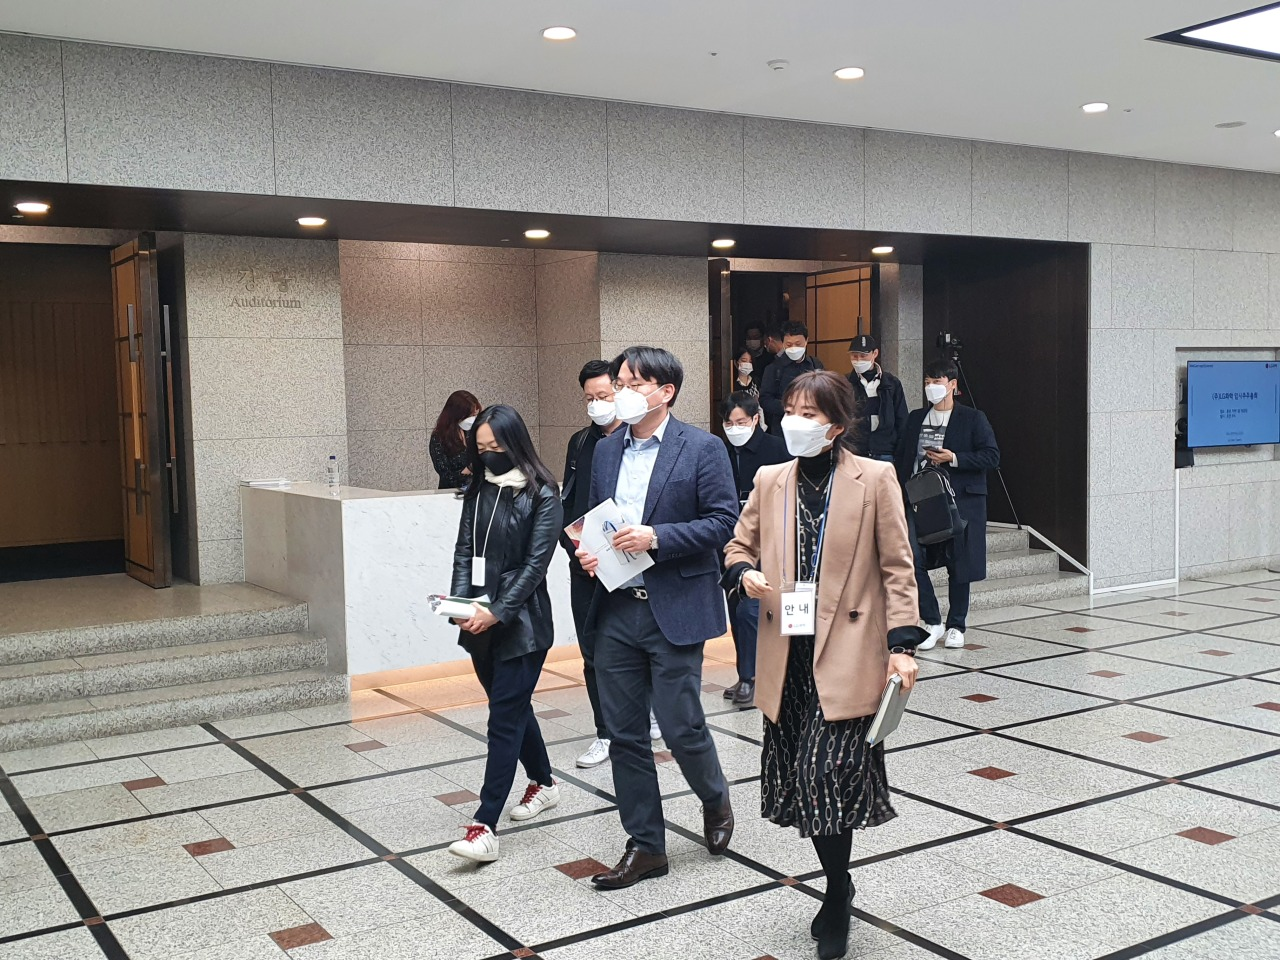 Shareholders exit the auditorium after the shareholders meeting. (Kim Byung-wook/The Korea Herald)